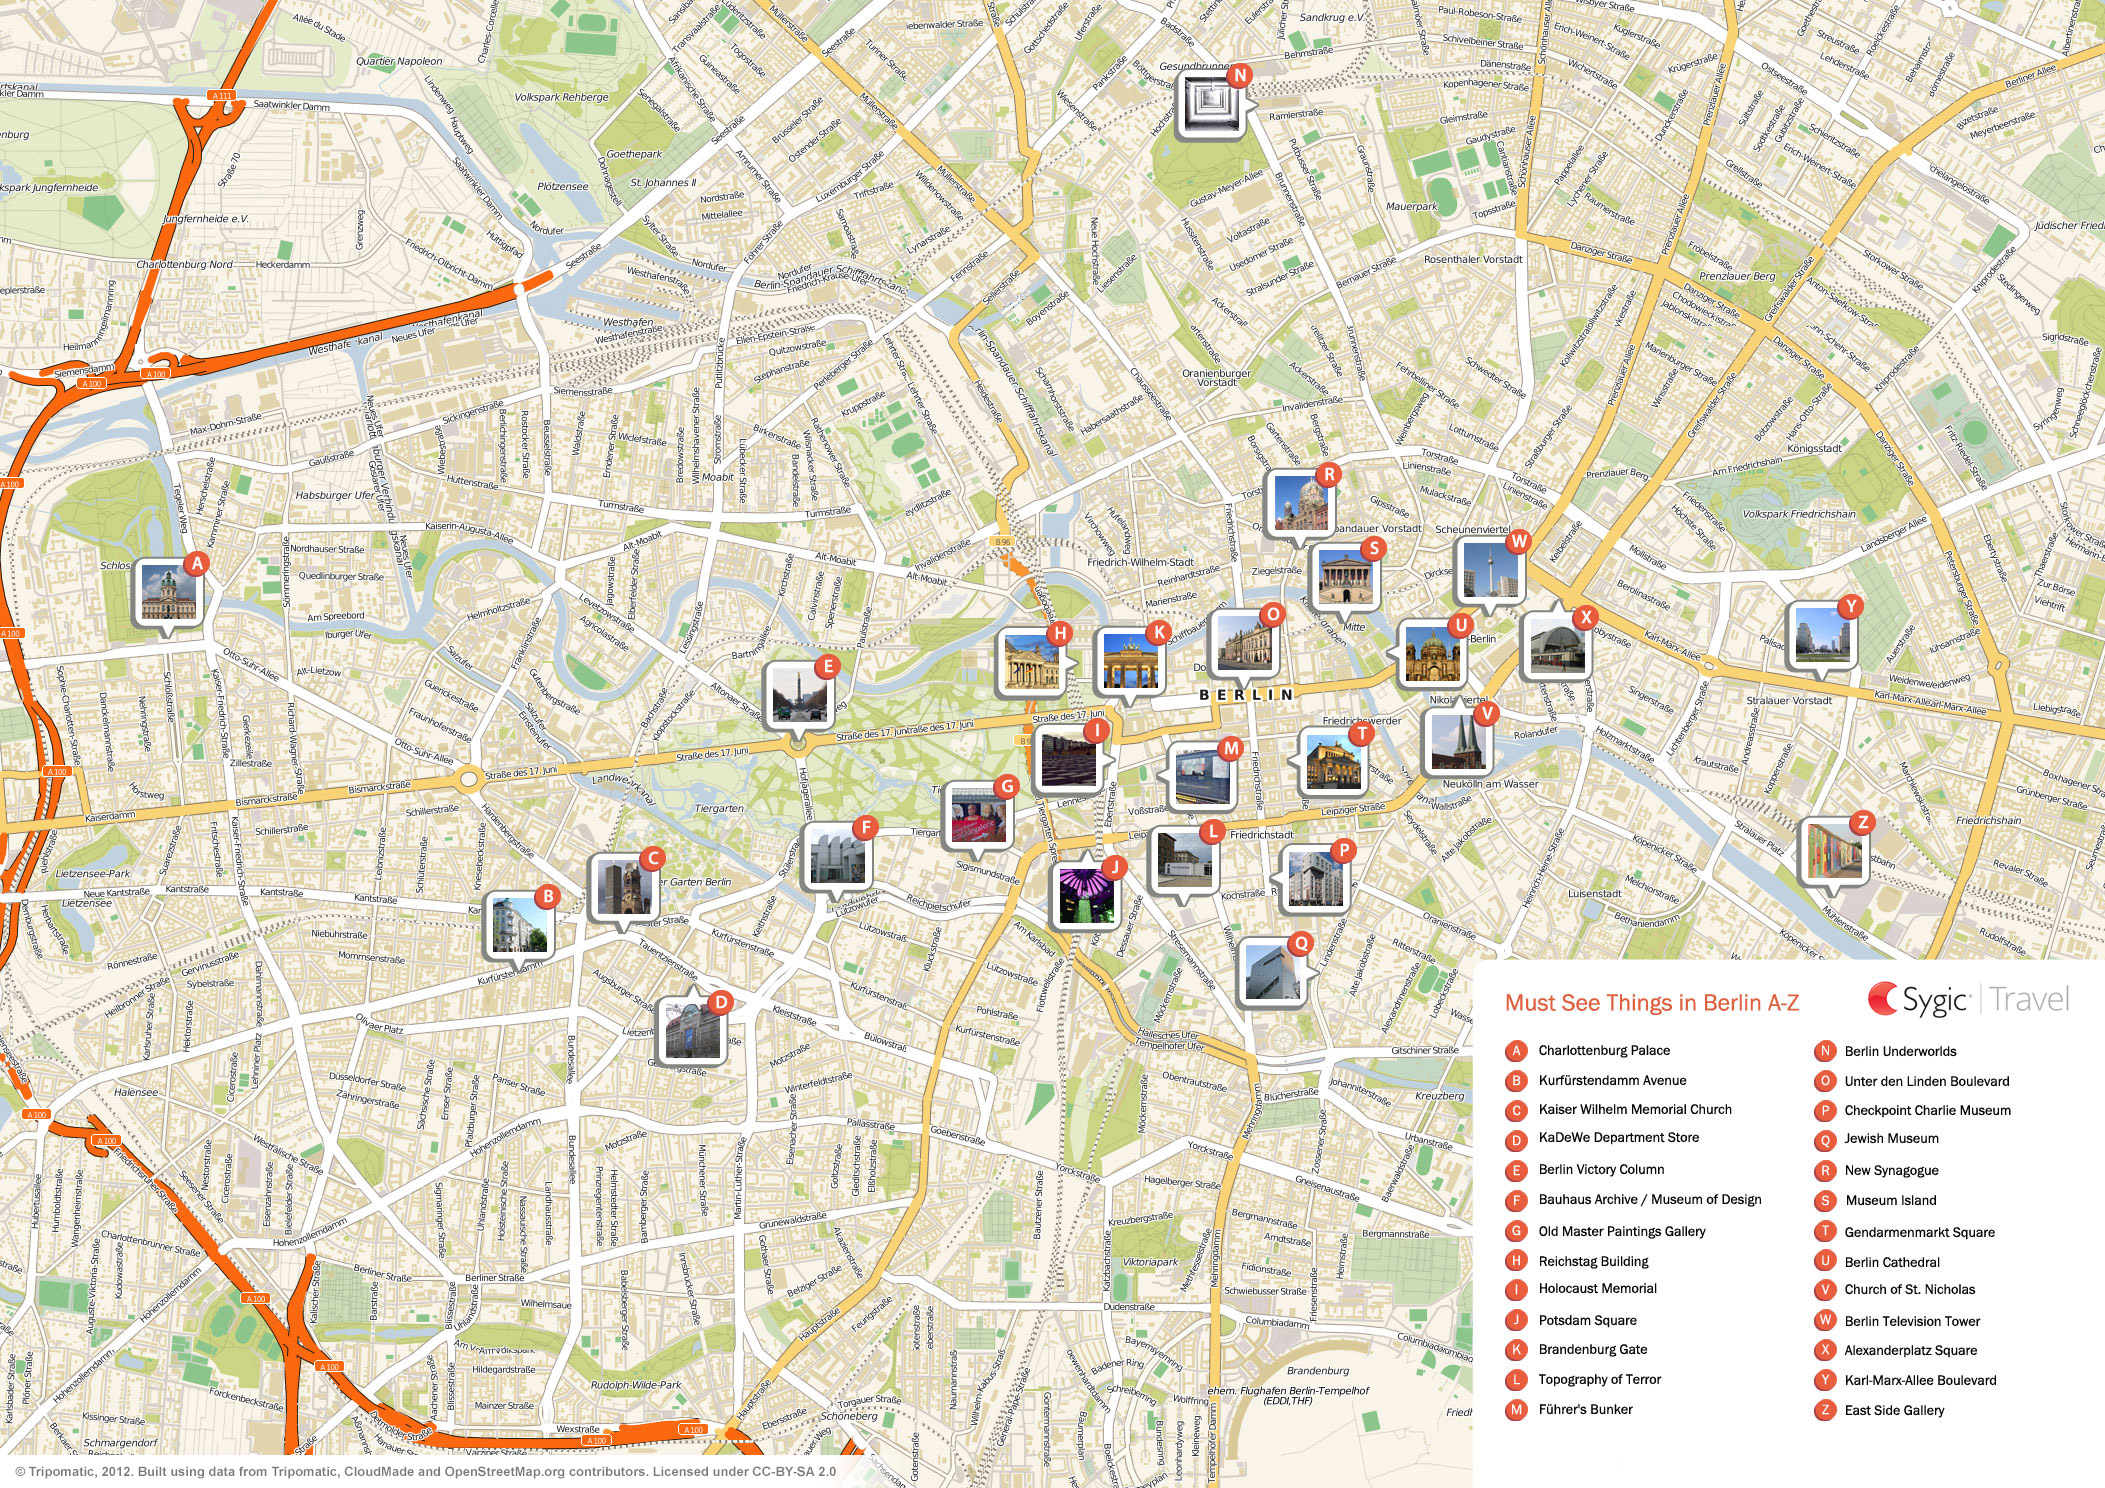 Berlin Printable Tourist Map Sygic Travel - Berlin map of tourist attractions